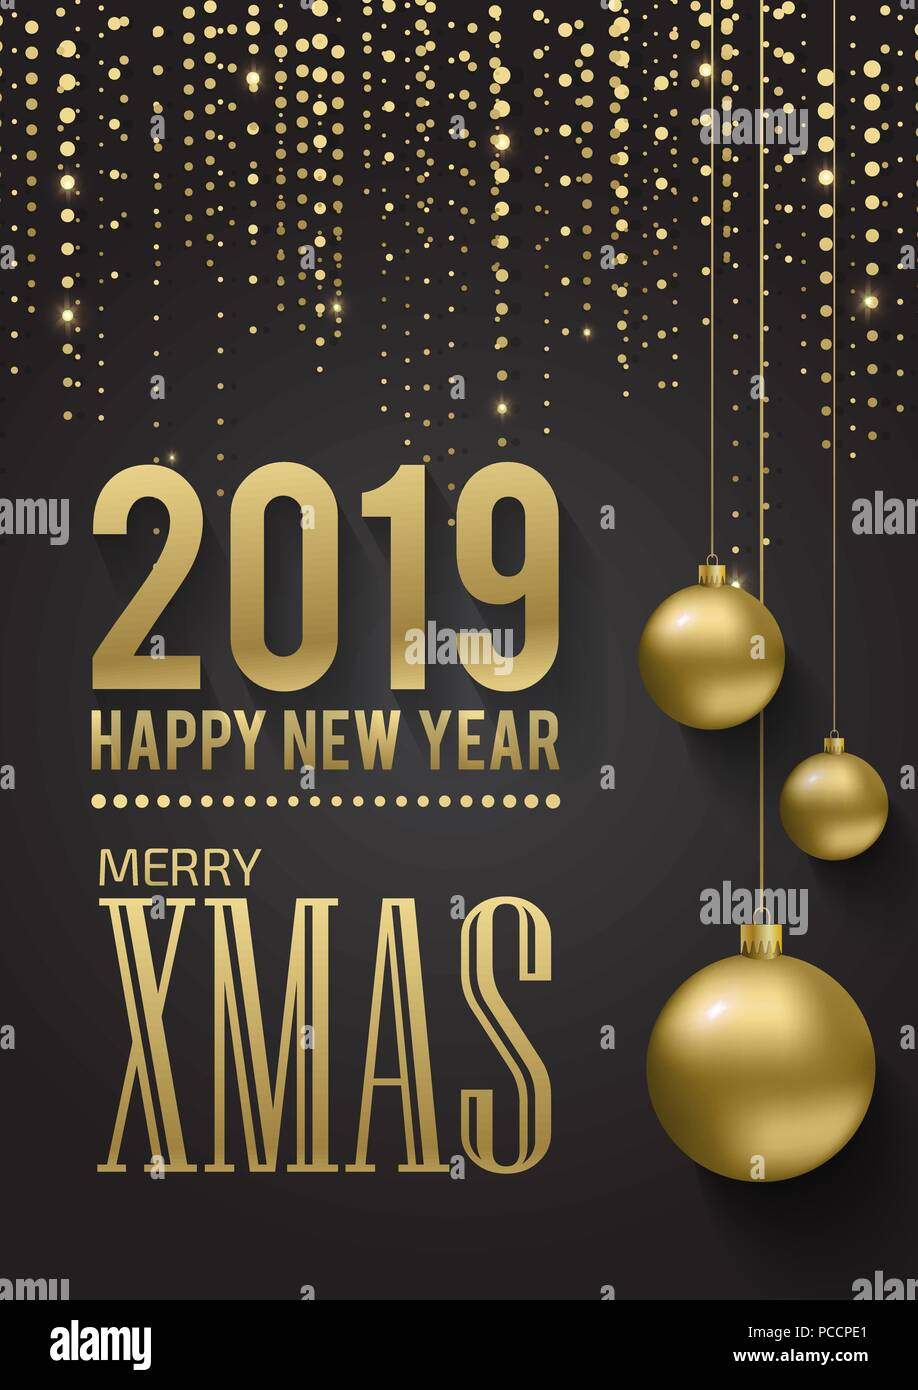 greeting card invitation with happy new year 2019 and christmas metallic gold christmas balls decoration shimmering shiny confetti on a black bac